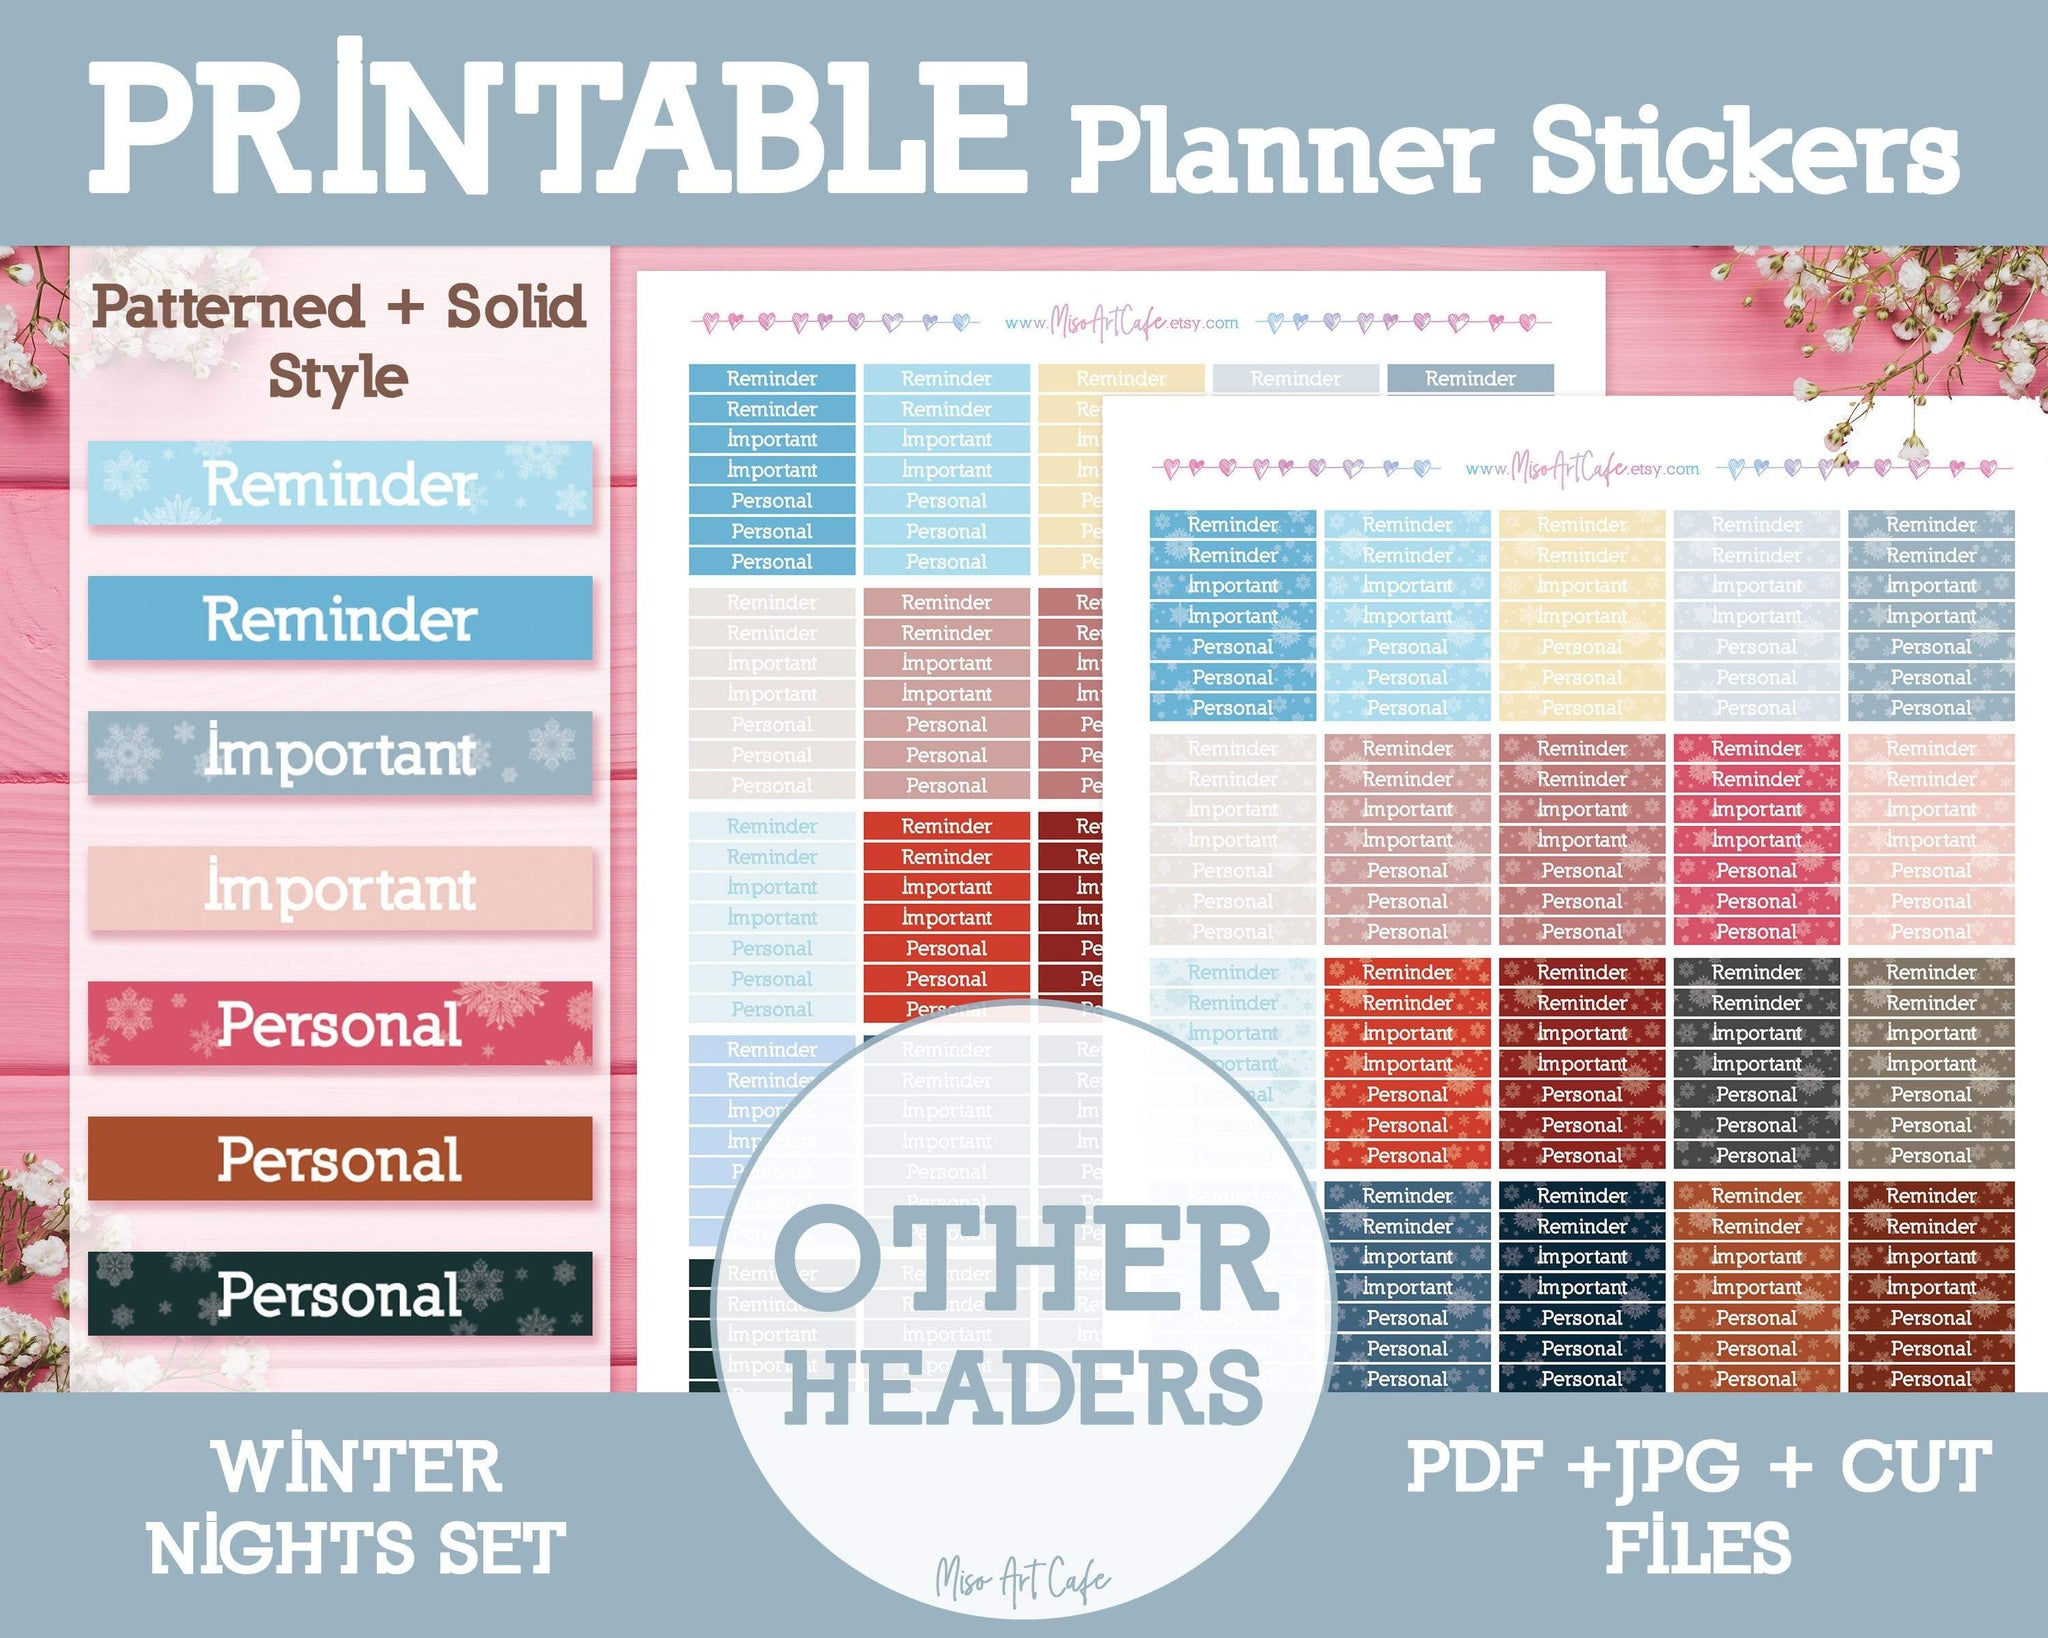 Printable Other Winter Headers - Winter Nights Planner Stickers - Miso Art Cafe